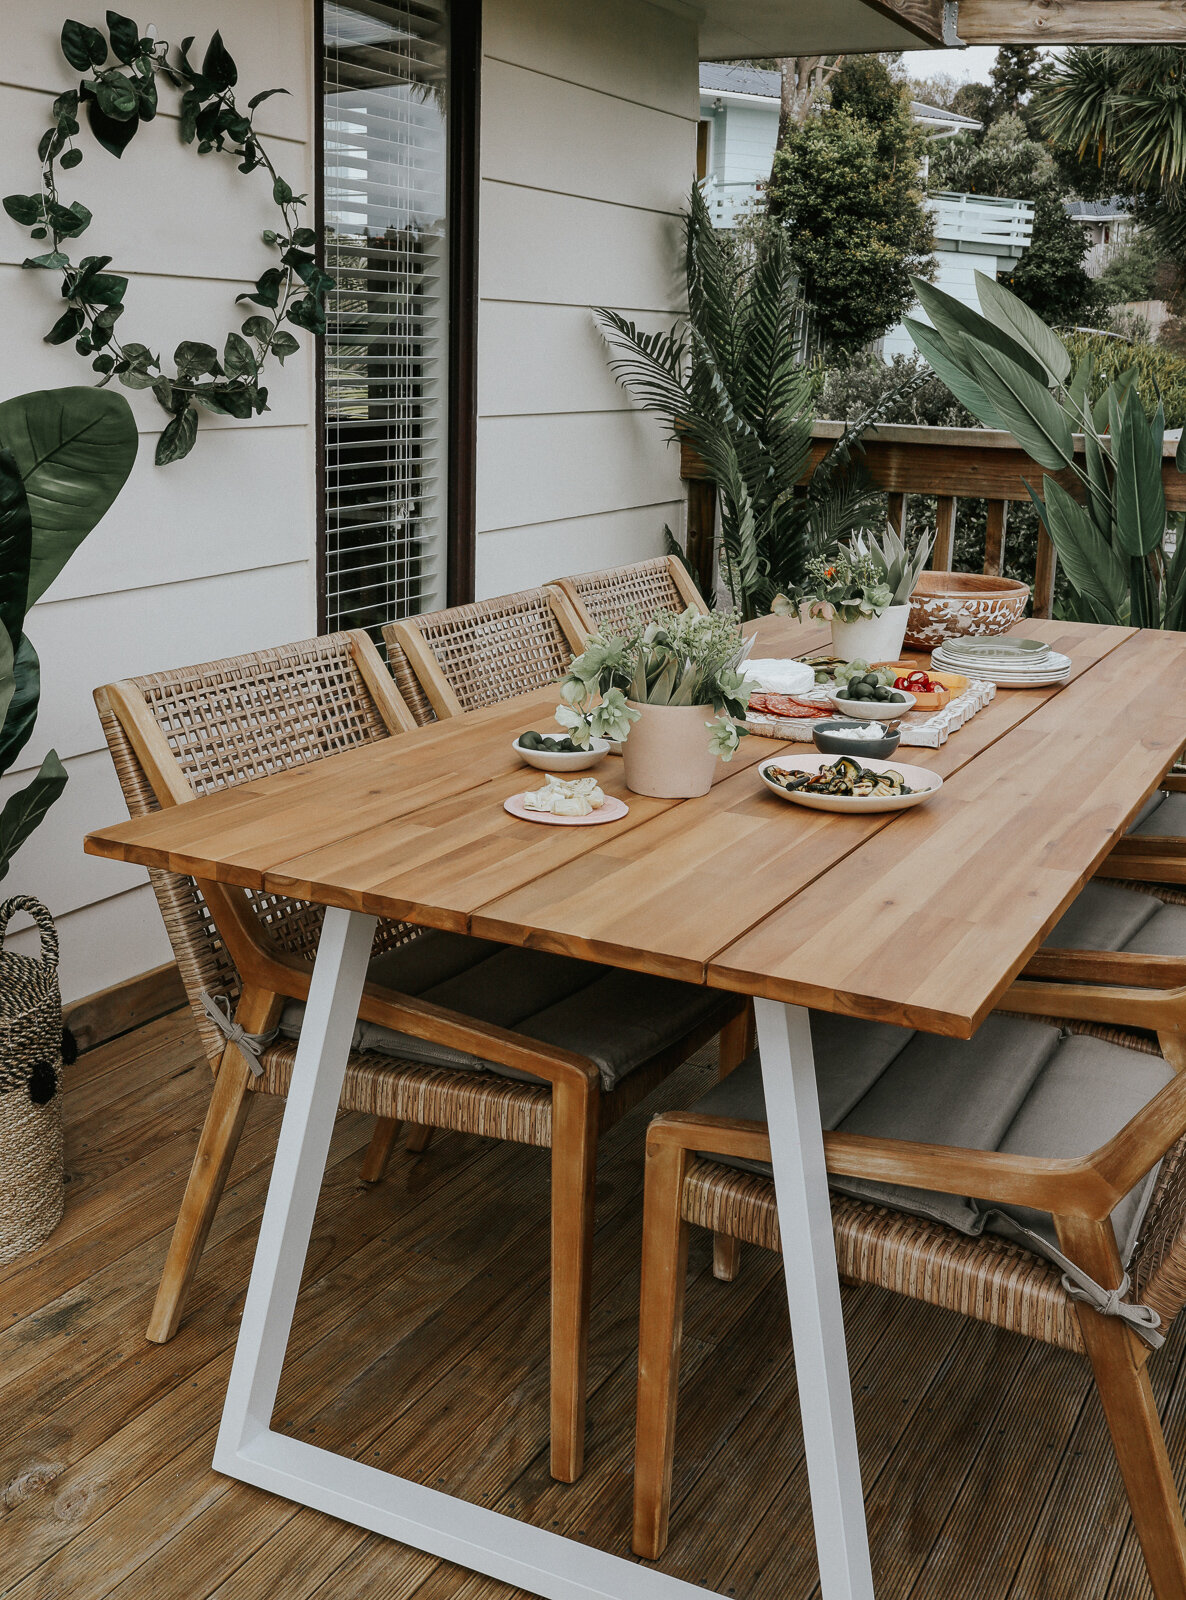 Small_deck_Makeover_two_ways_by_clever_Poppy_tropical_dining5.jpg